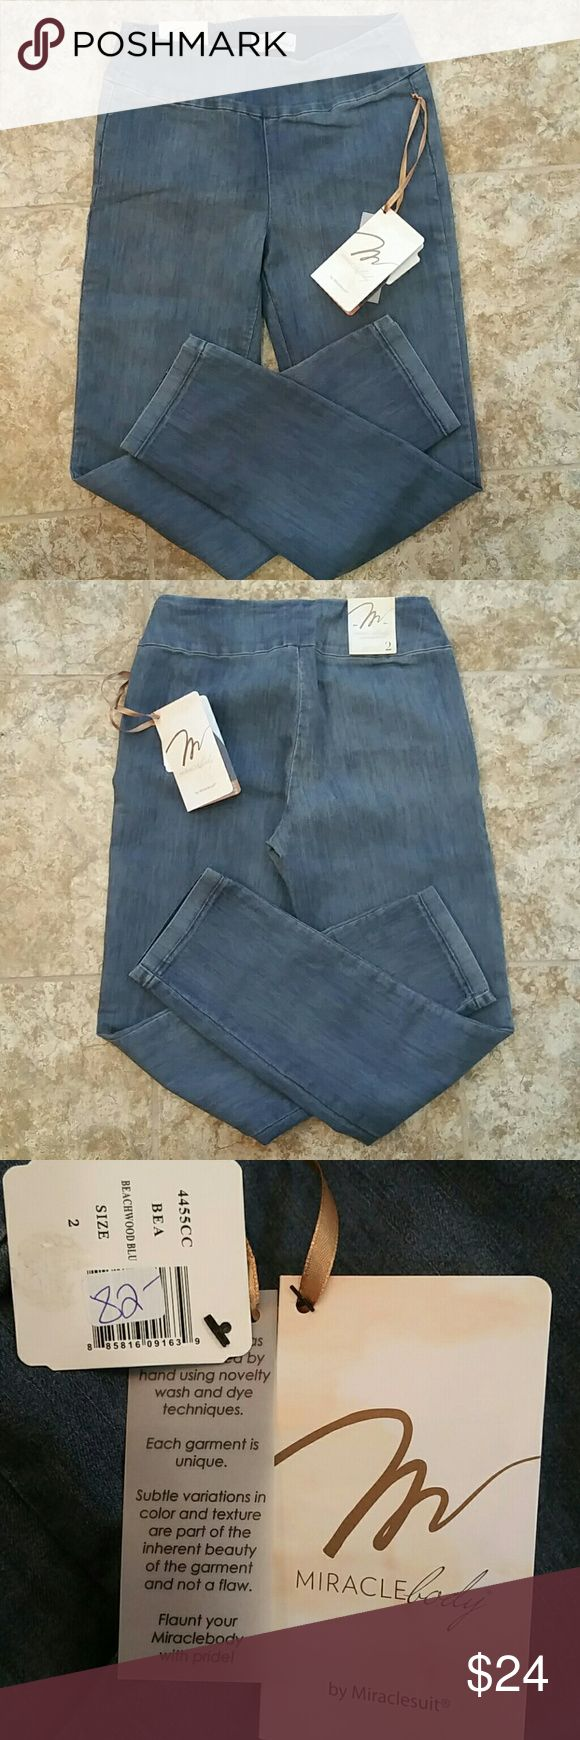 """NWT Miraclebody jeans NWT beach wash blue, pull on crop. No pockets, no zippers or buttons.  27 1/2"""" inseam. Miraclesuit Jeans Ankle & Cropped"""